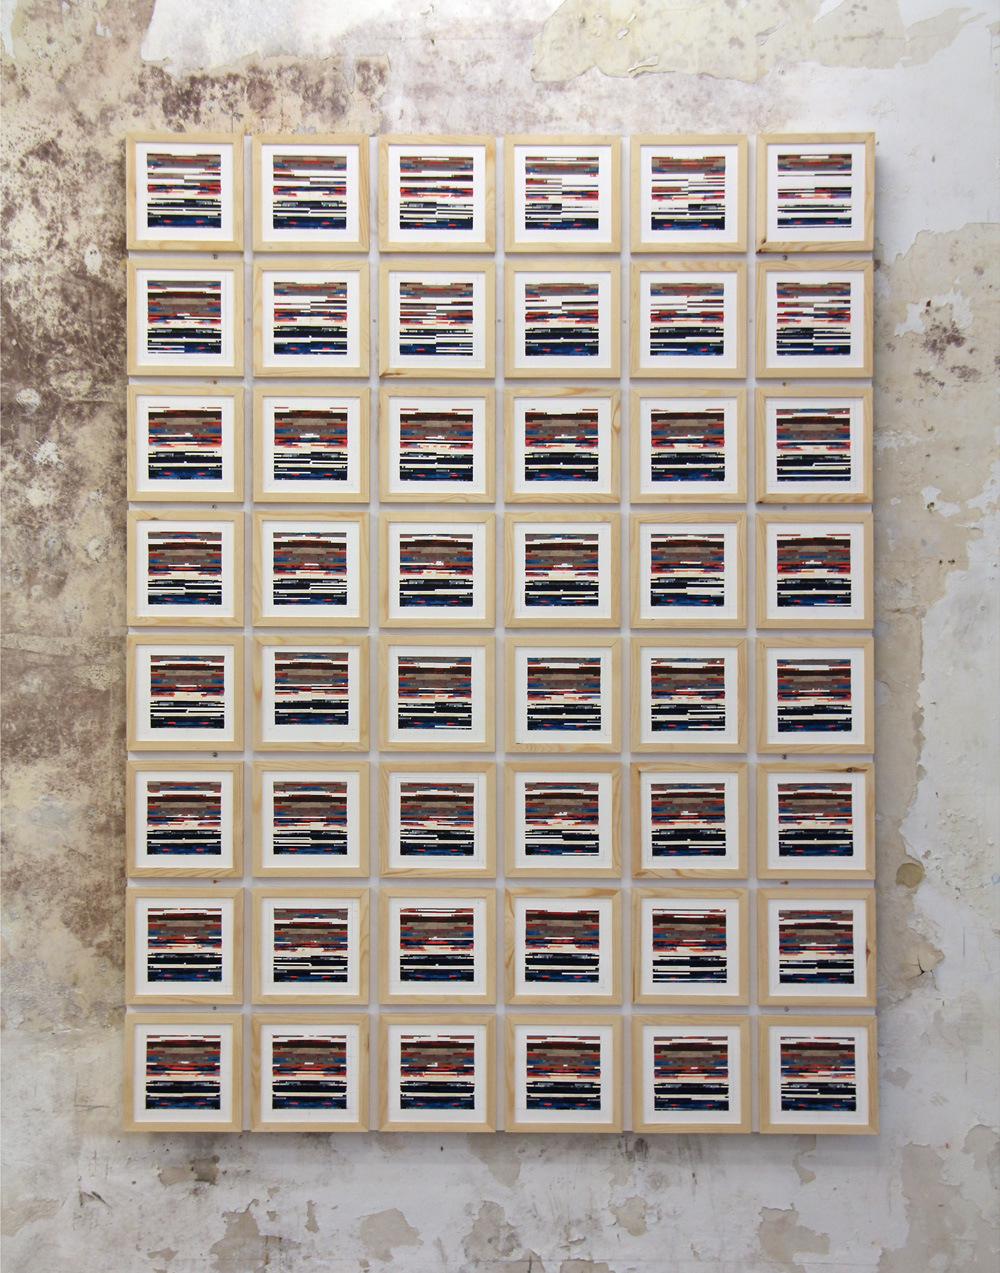 laurenttrezegnies - title : 48 times the same thing acrylic, collage, paper and wood, 206 / 154 cm, 48 X 23 / 23 cm 2015 exhibited in : recyclart Brussels iMAL Brussels